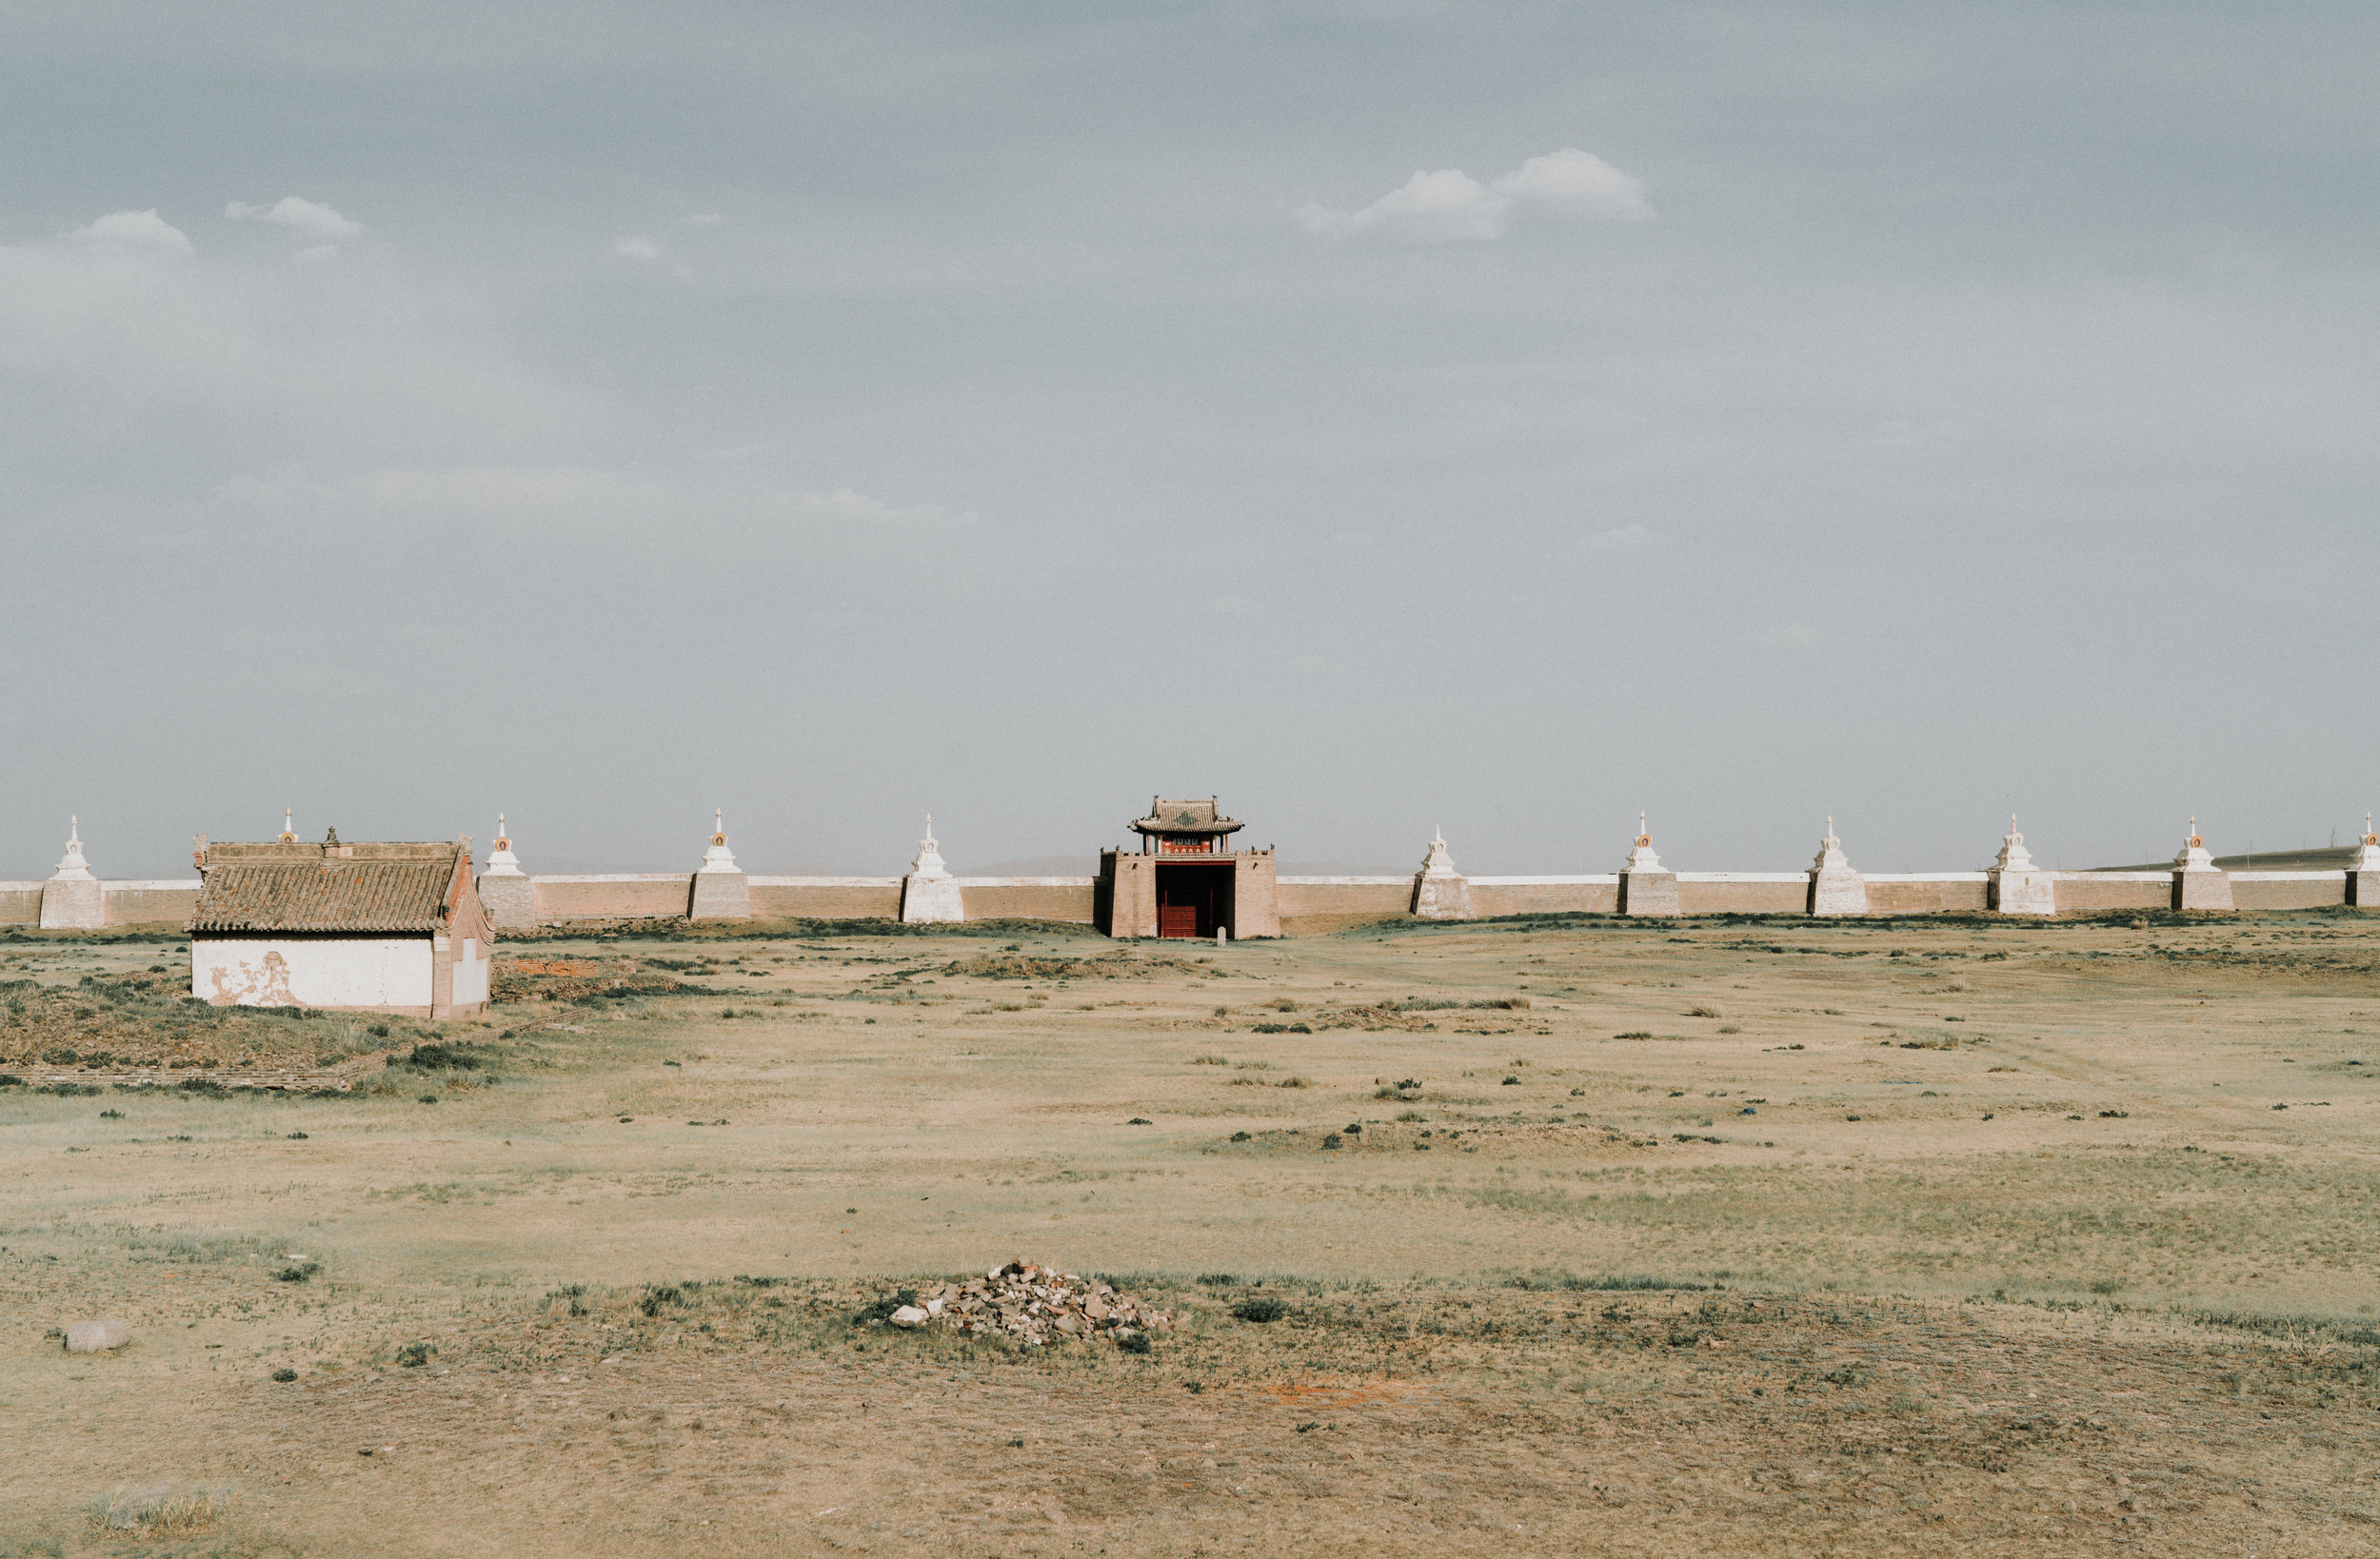 Mongolia_2018 (271 of 403) copy.jpg